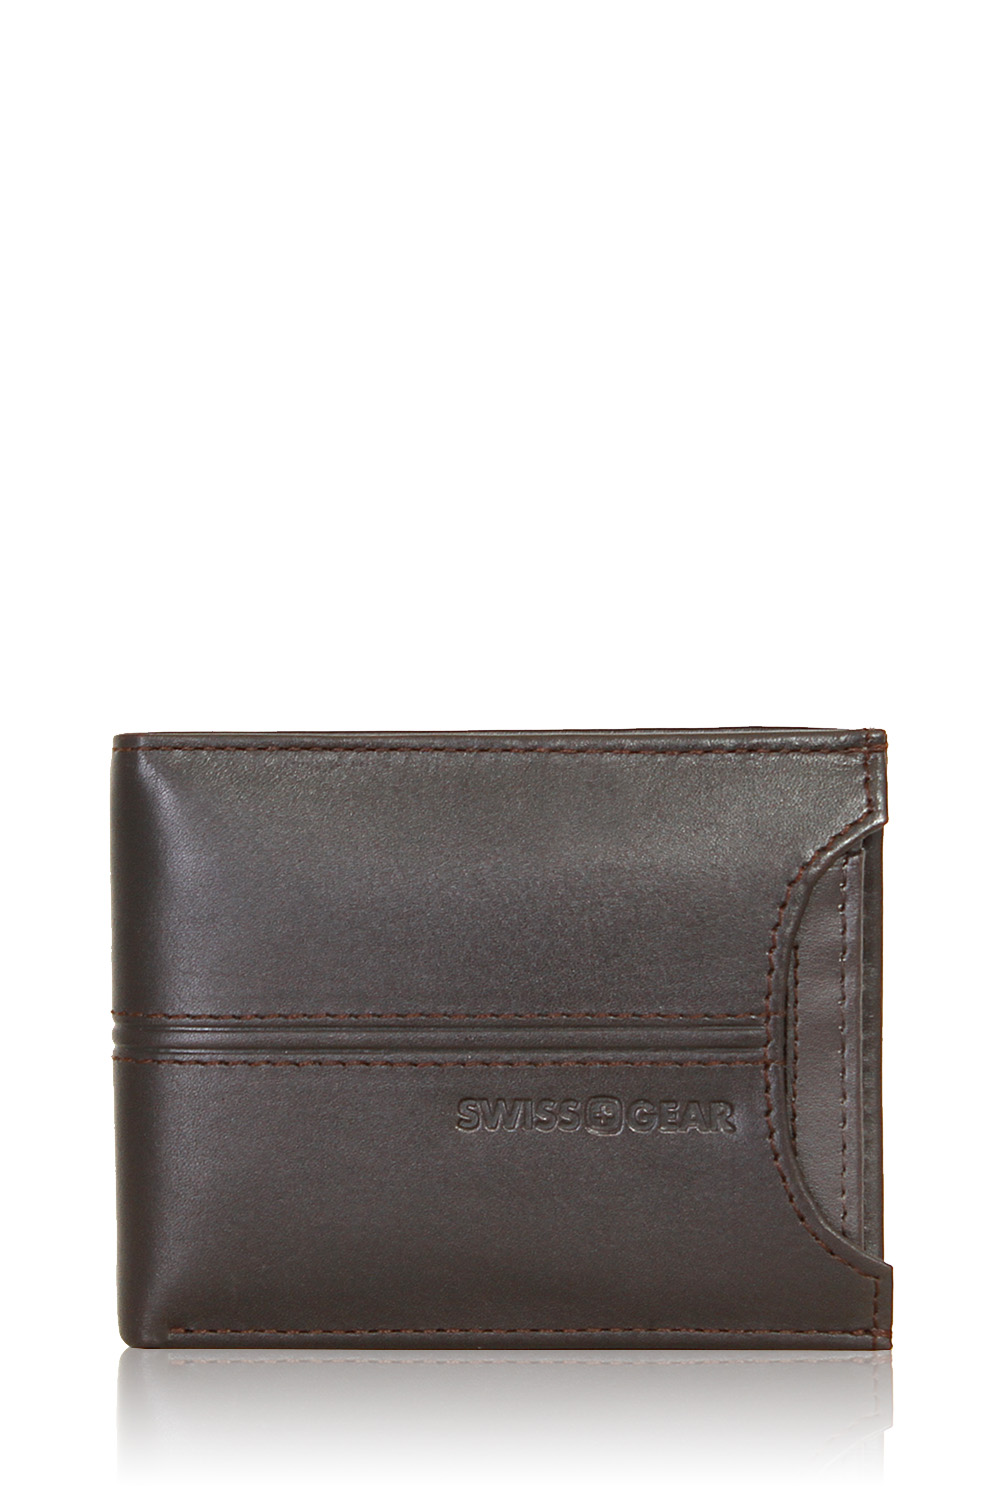 5863e897b83 Swissgear Delmont Bifold Wallet with Card Case Slide-Out